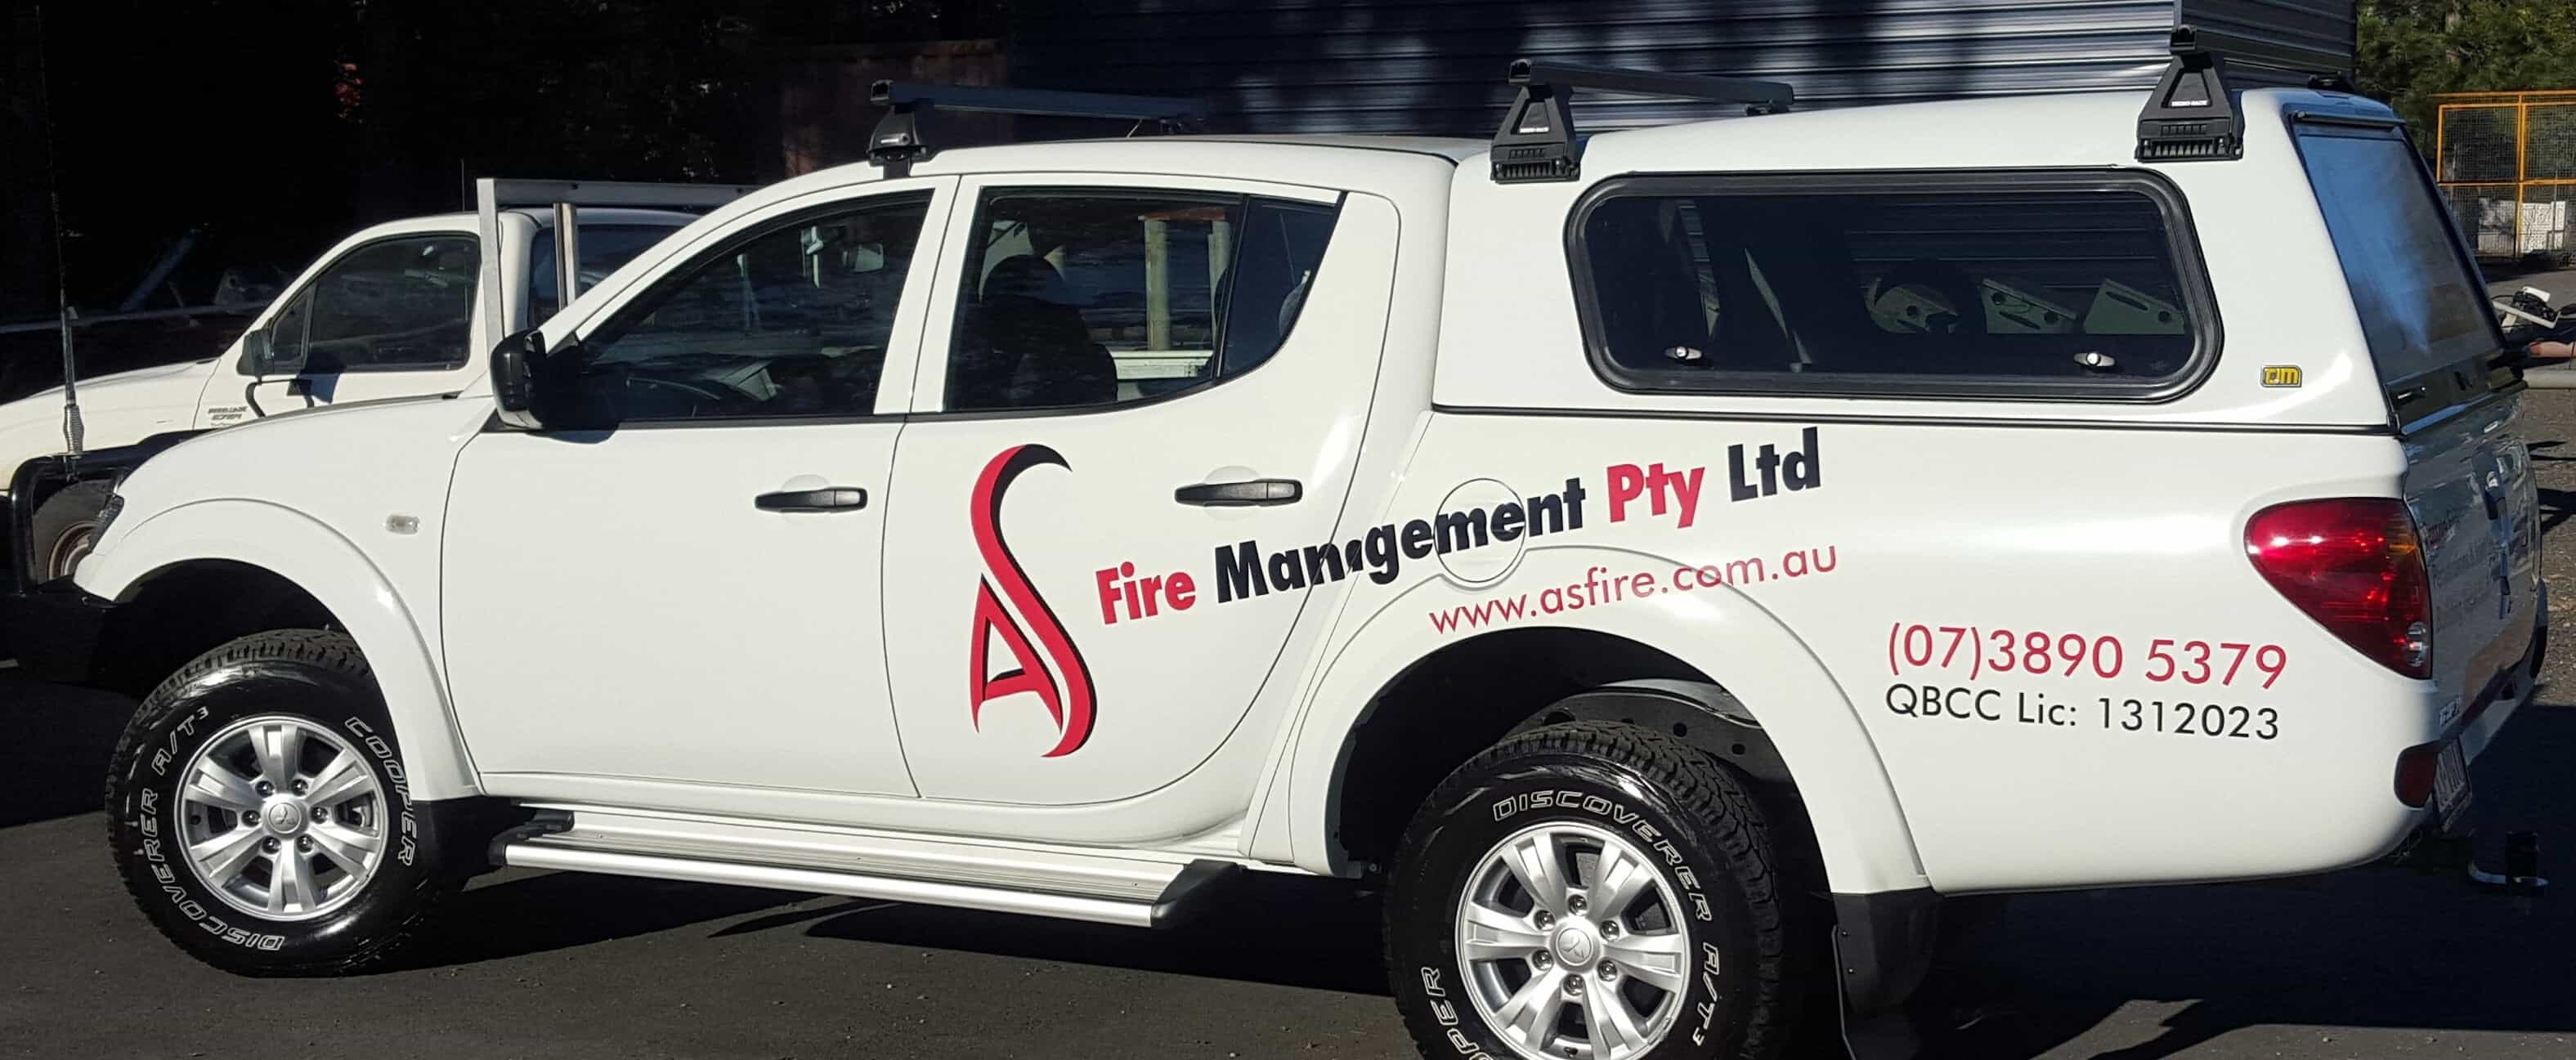 Fire Protection Services Sunshine Coast